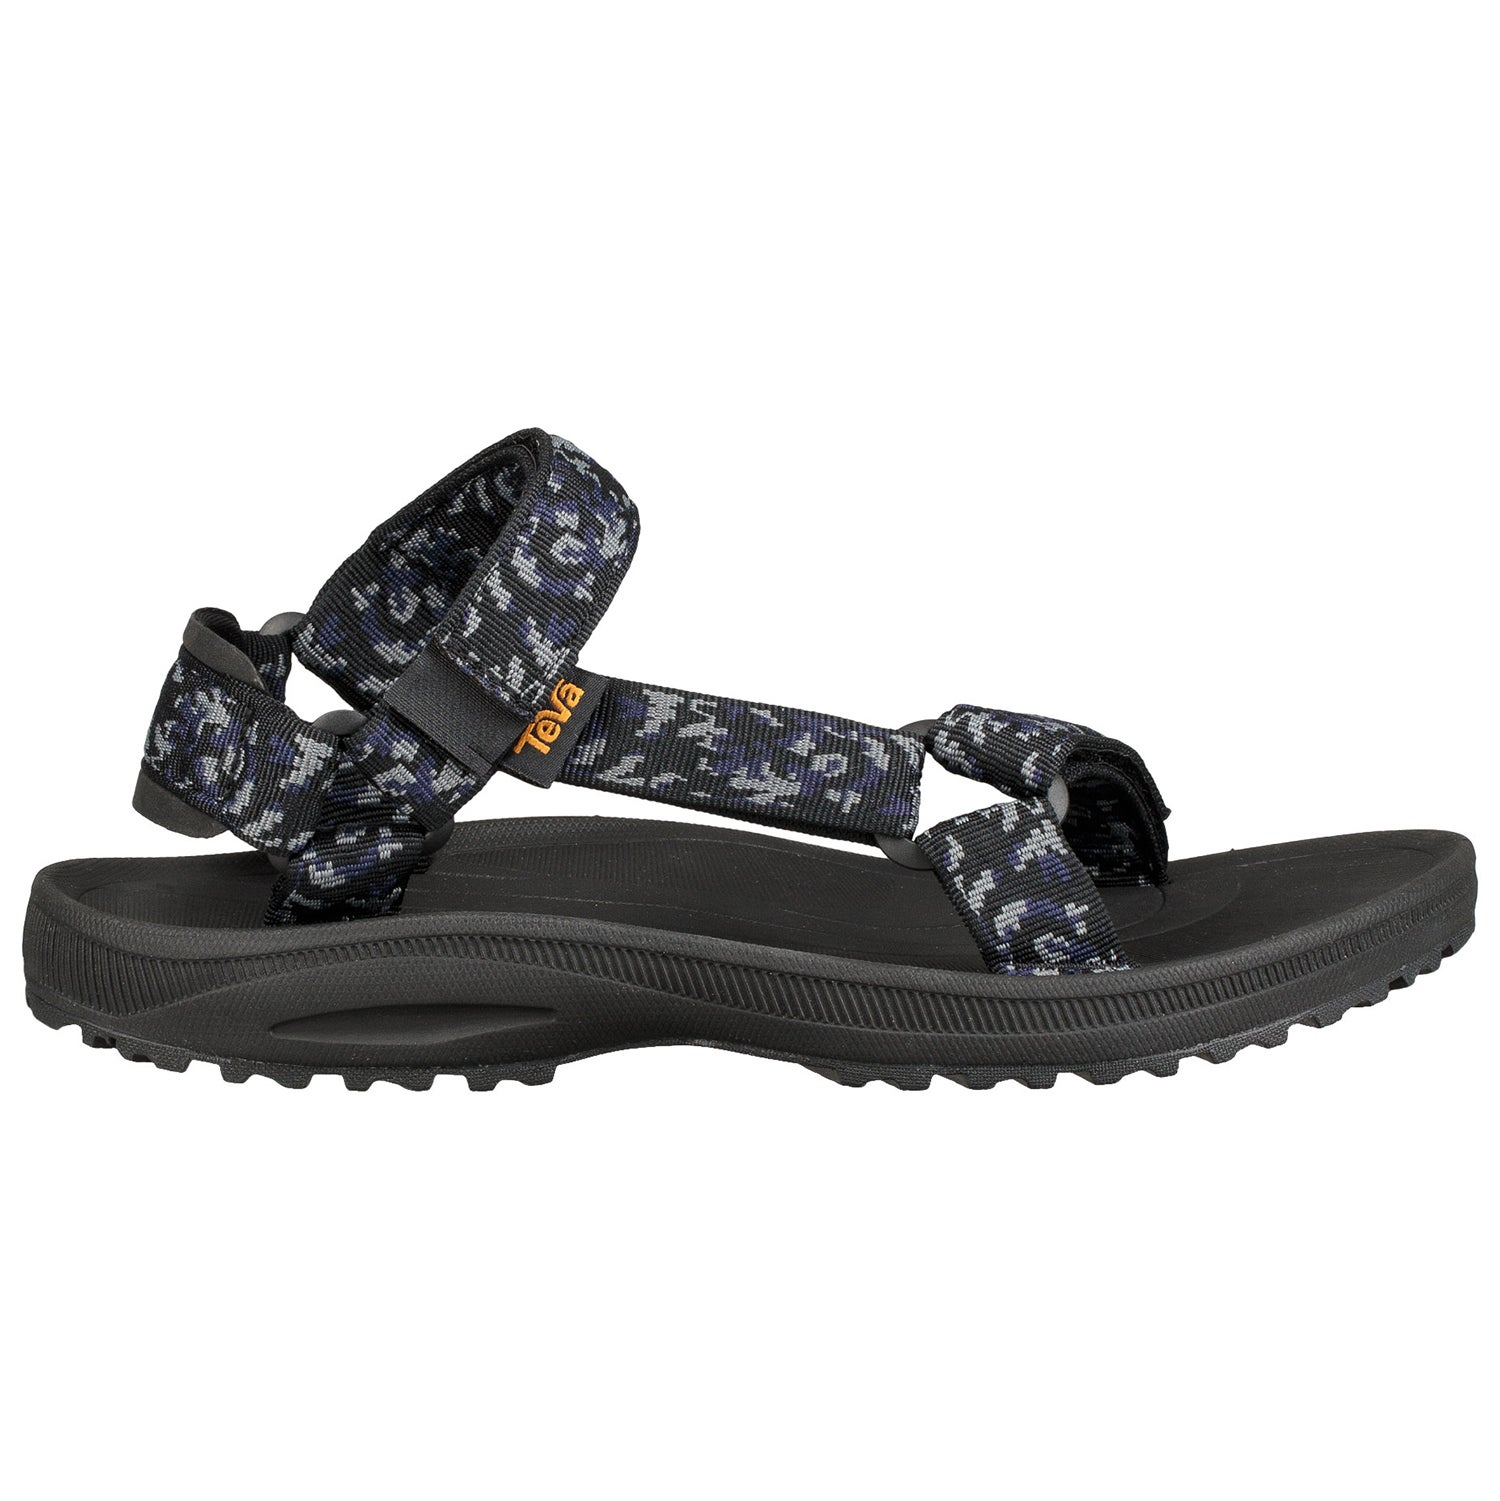 486a1dde96e9 Teva Winsted Mens Footwear Sandals - Bramble Black All Sizes